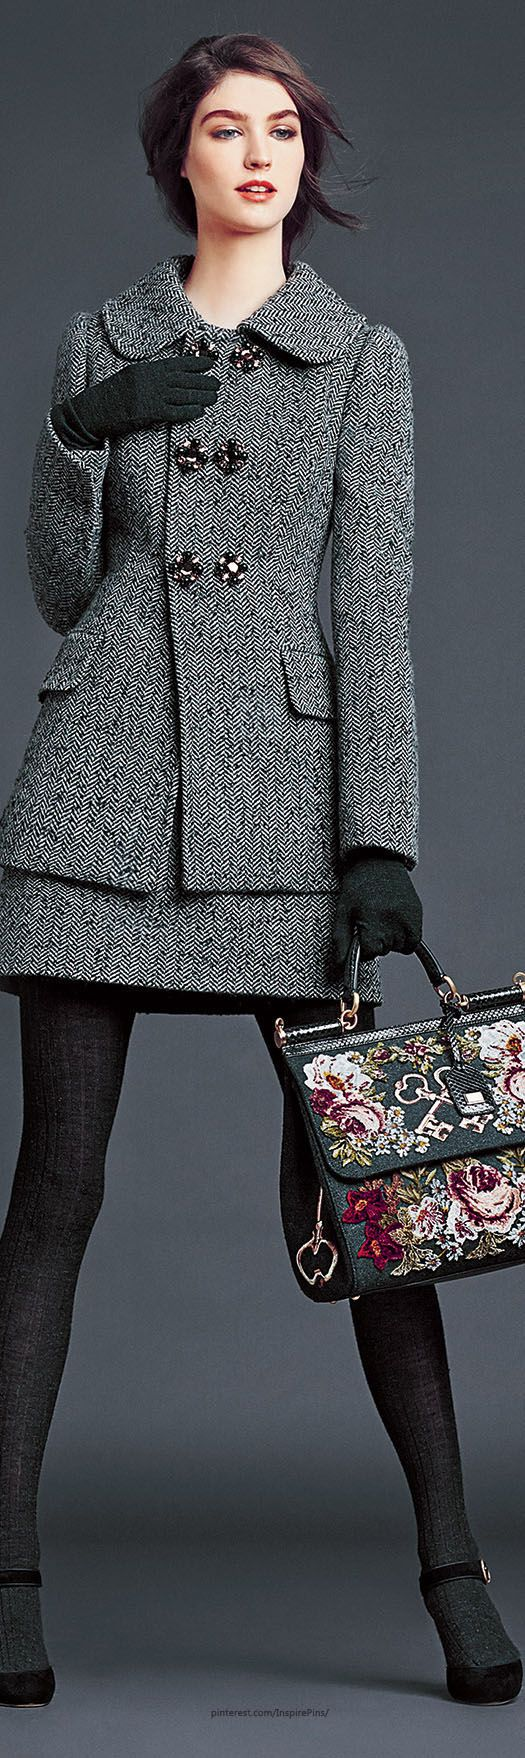 Dolce & Gabbana F/ W 2014-15 -- This outfit could make winter bearable!